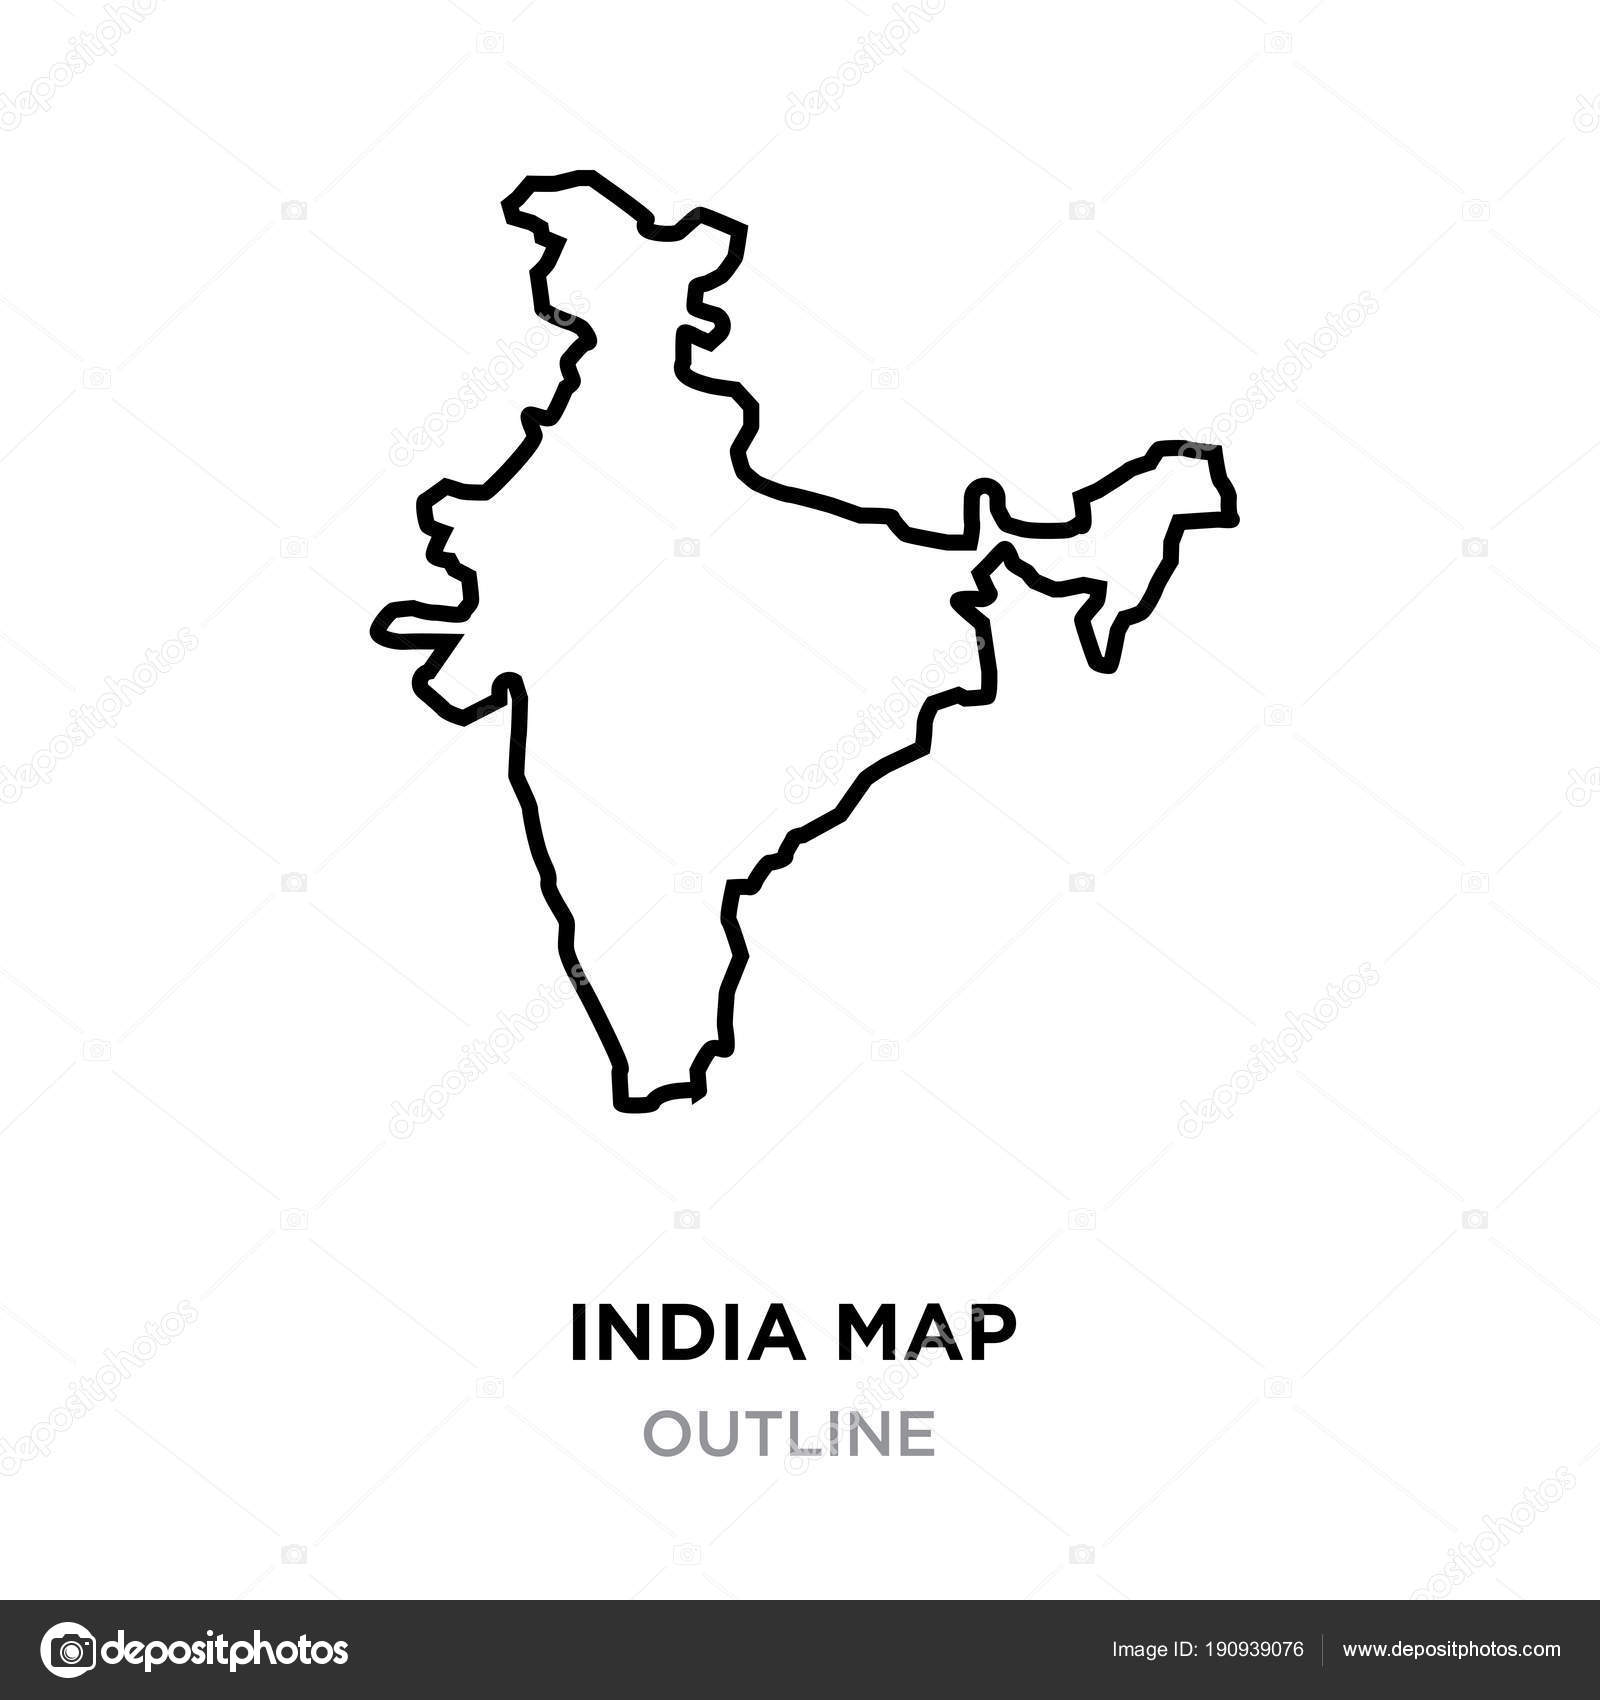 India Map Outline Png On White Background Vector Illustration